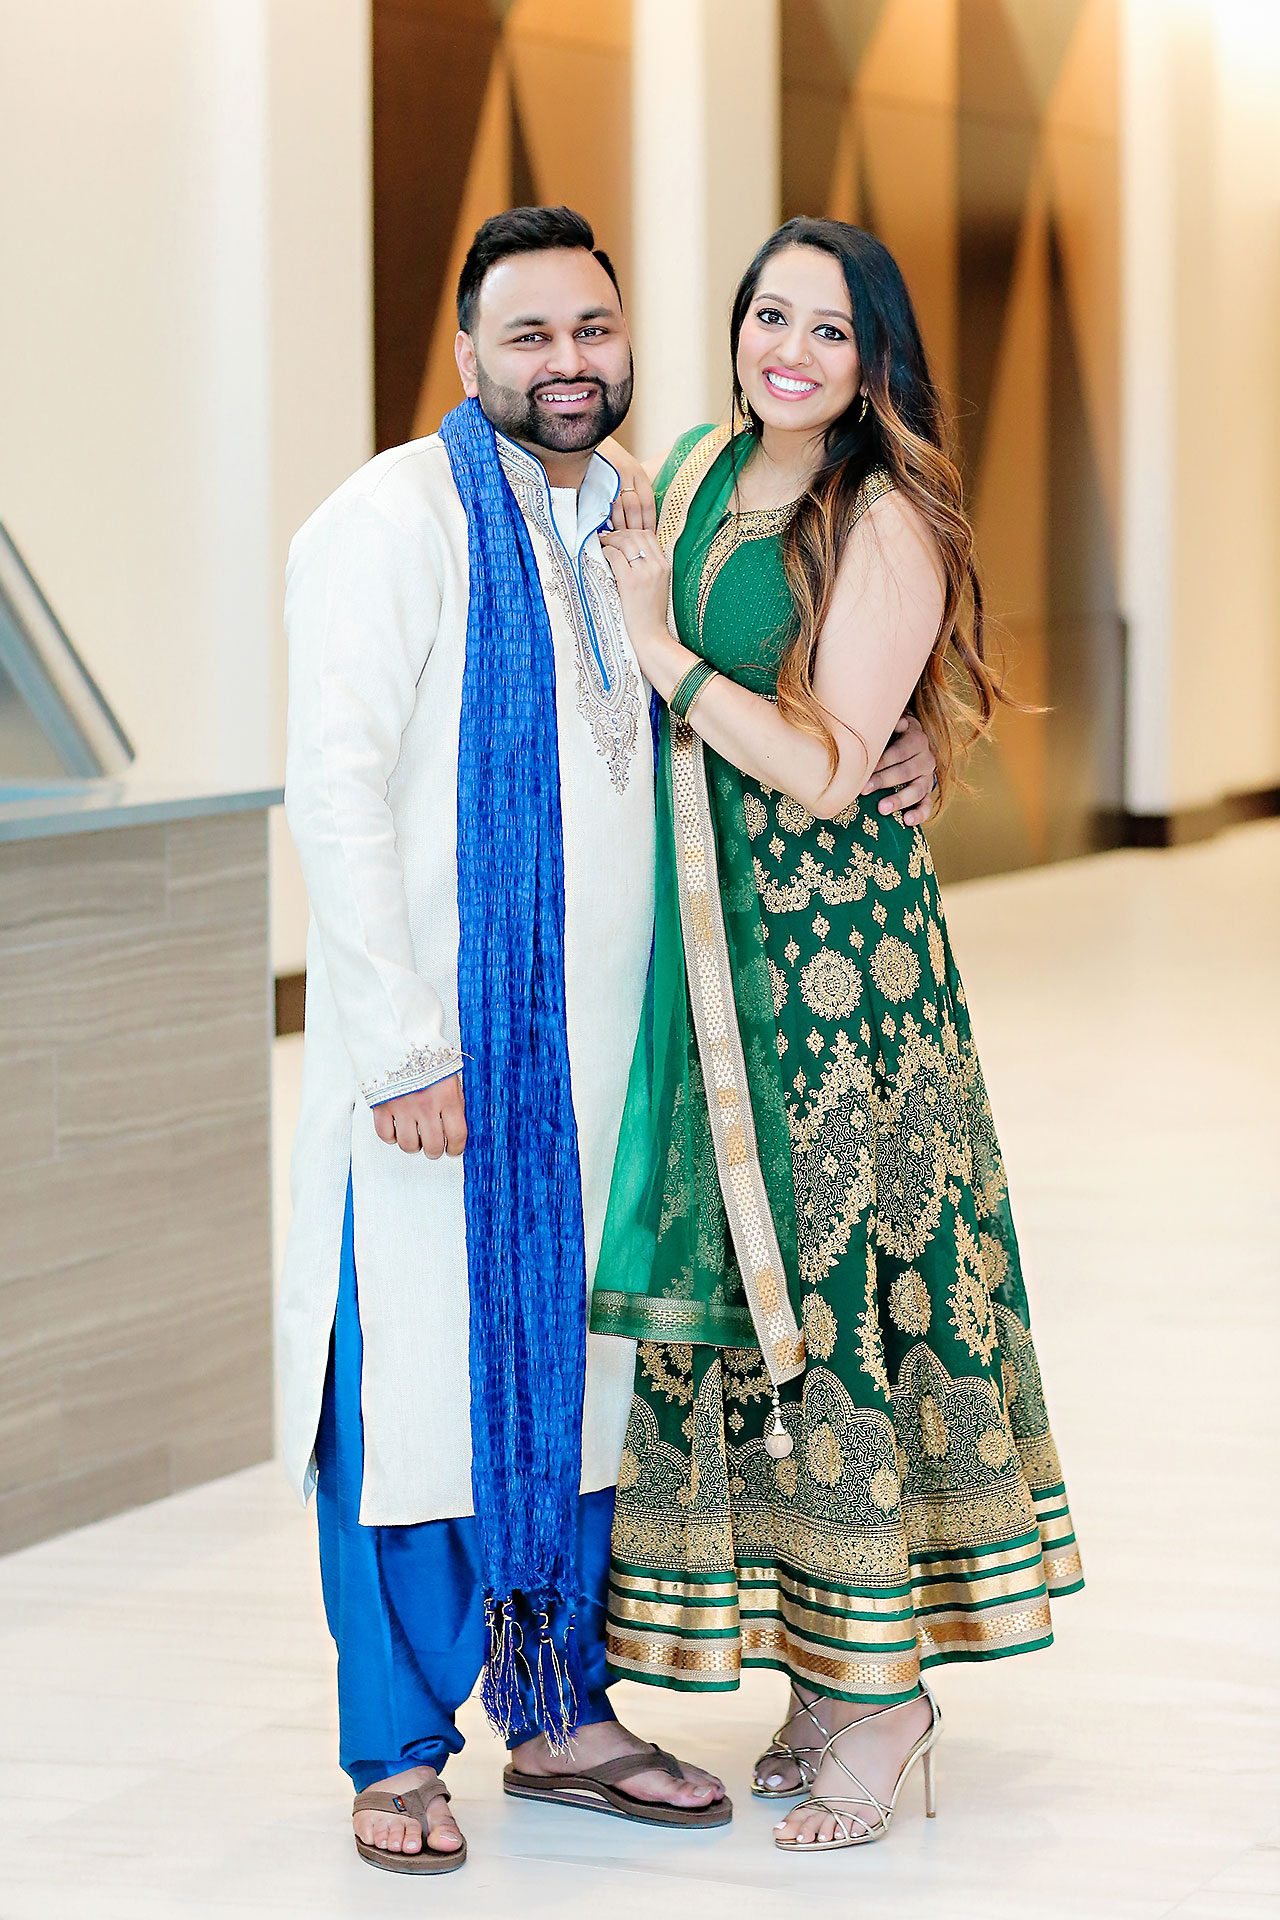 Neil Ganesh Pooja Embassy Suites Conference Center Noblesville 223